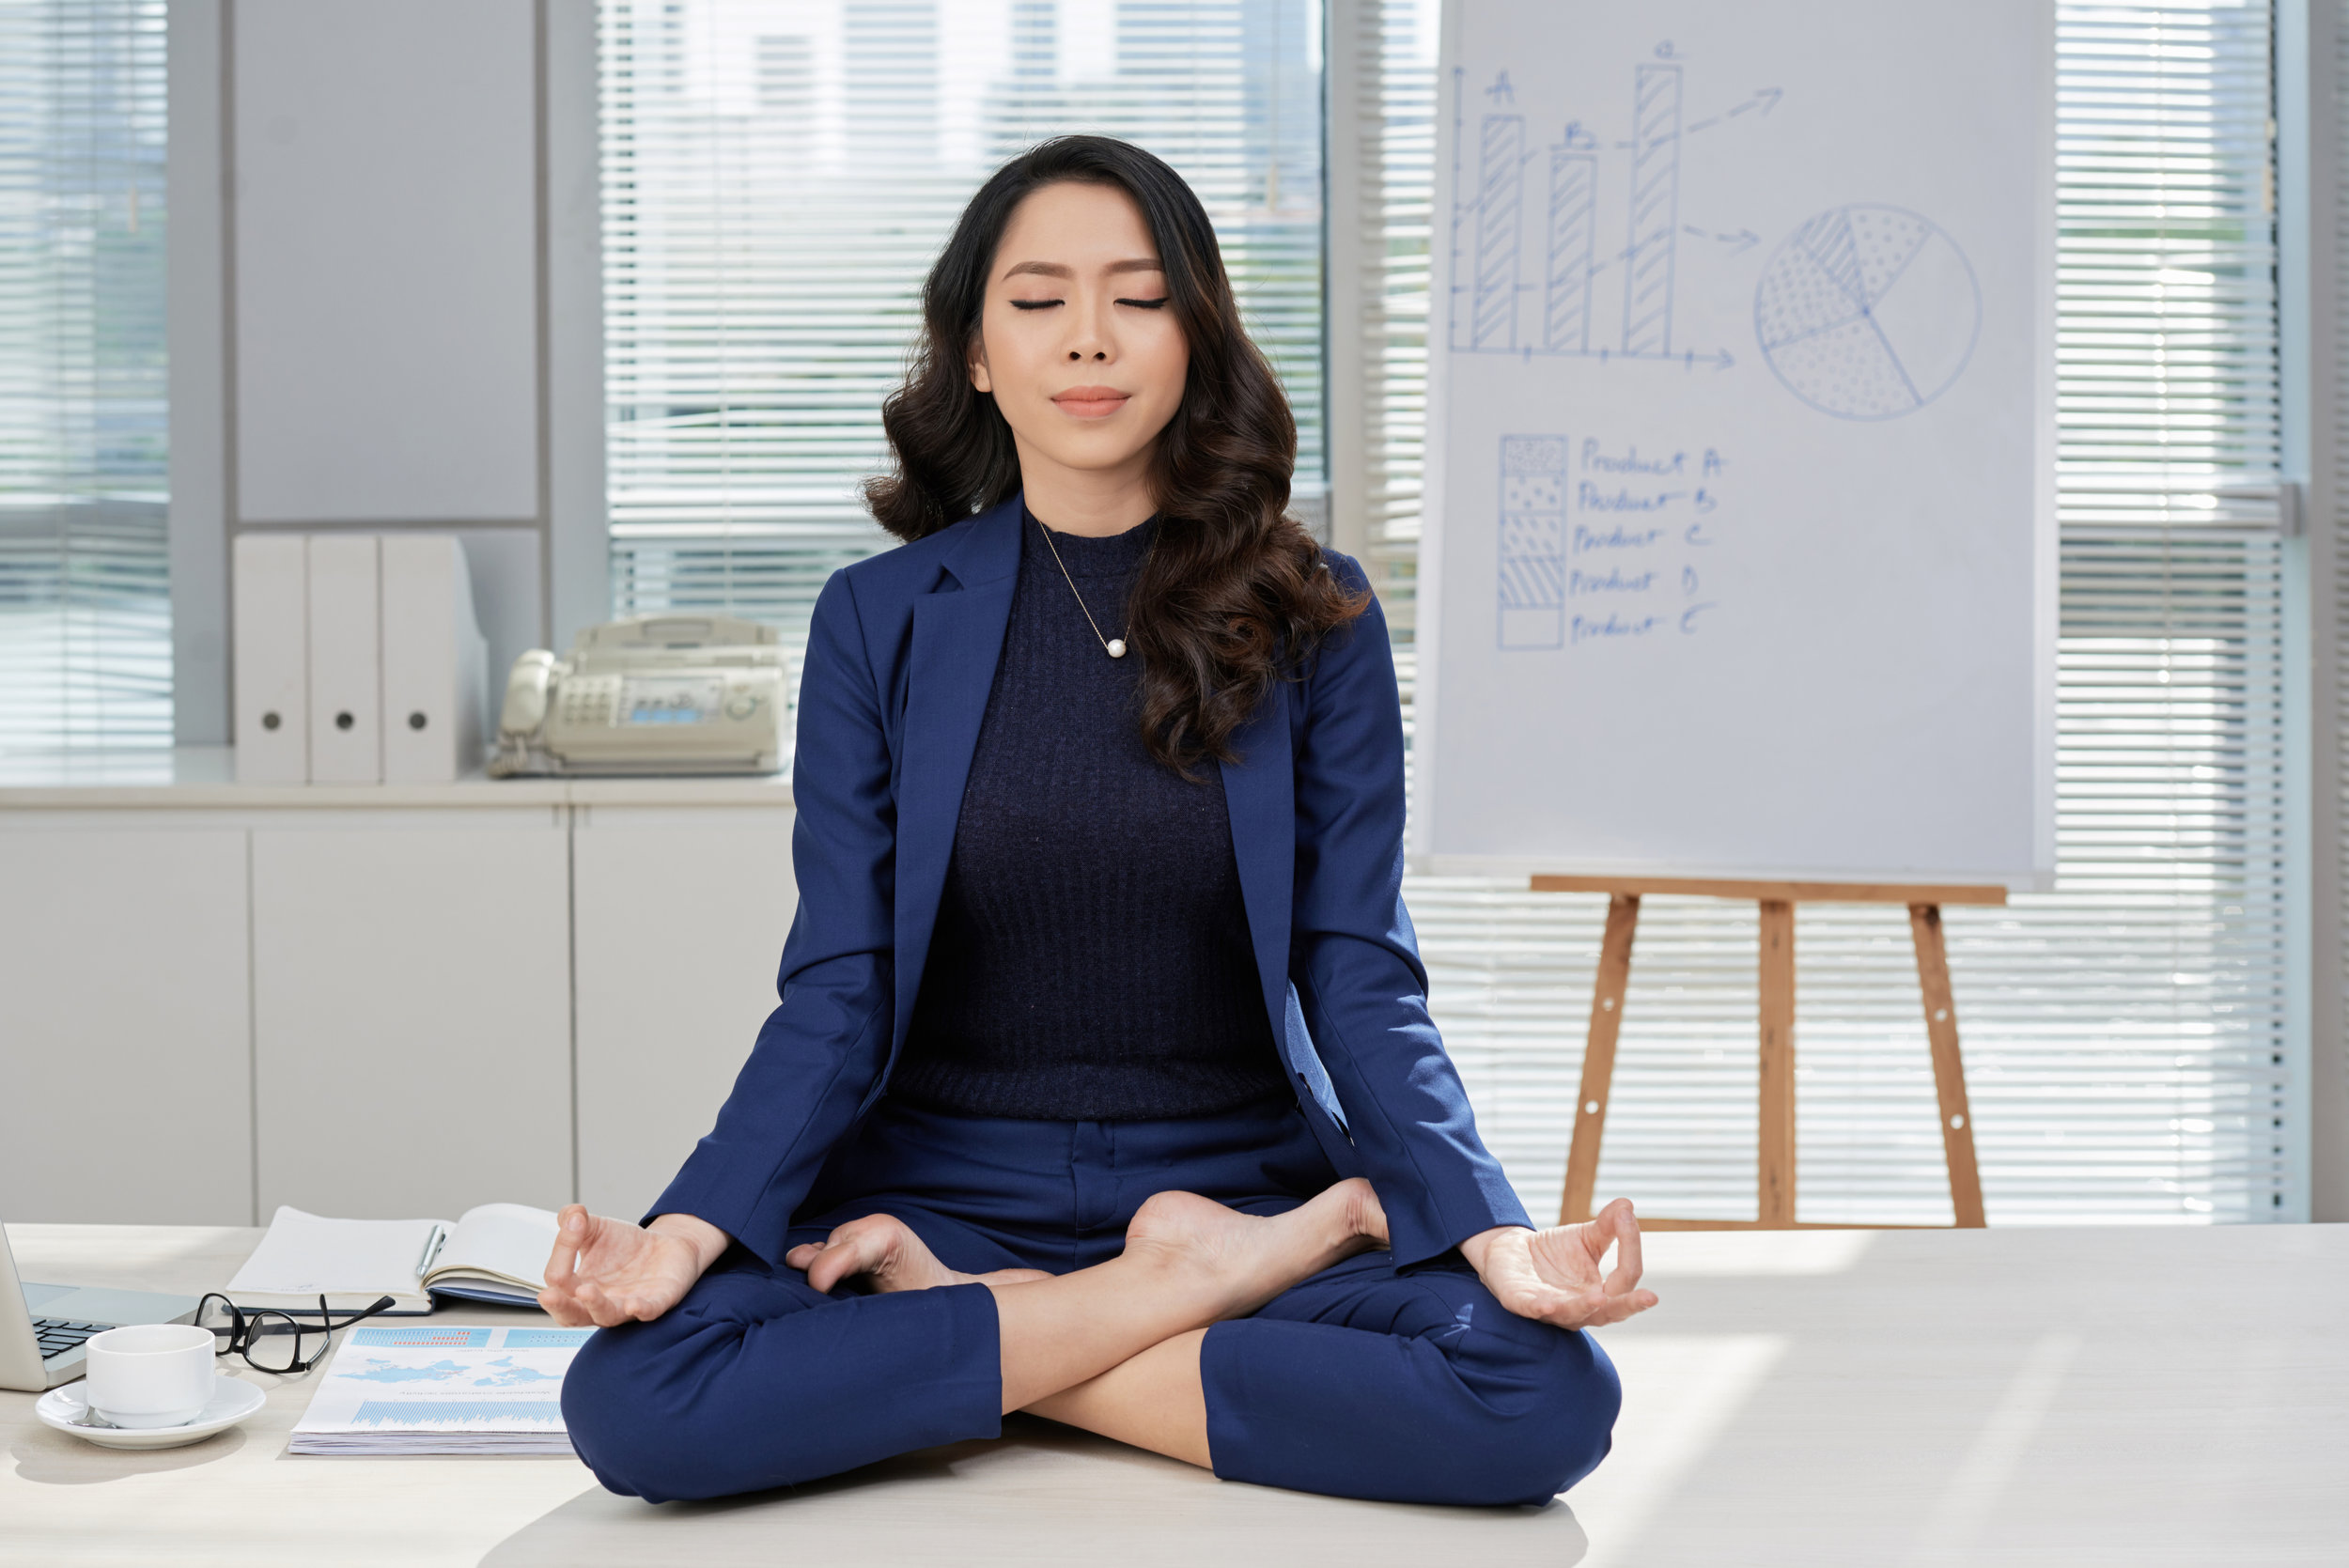 What is Meditation? - ● Practice of training attention to achieve a calmer, more sable mind● Formal, sitting, once or twice per day● Develops concentration● Continually returns attention back to an object of focus